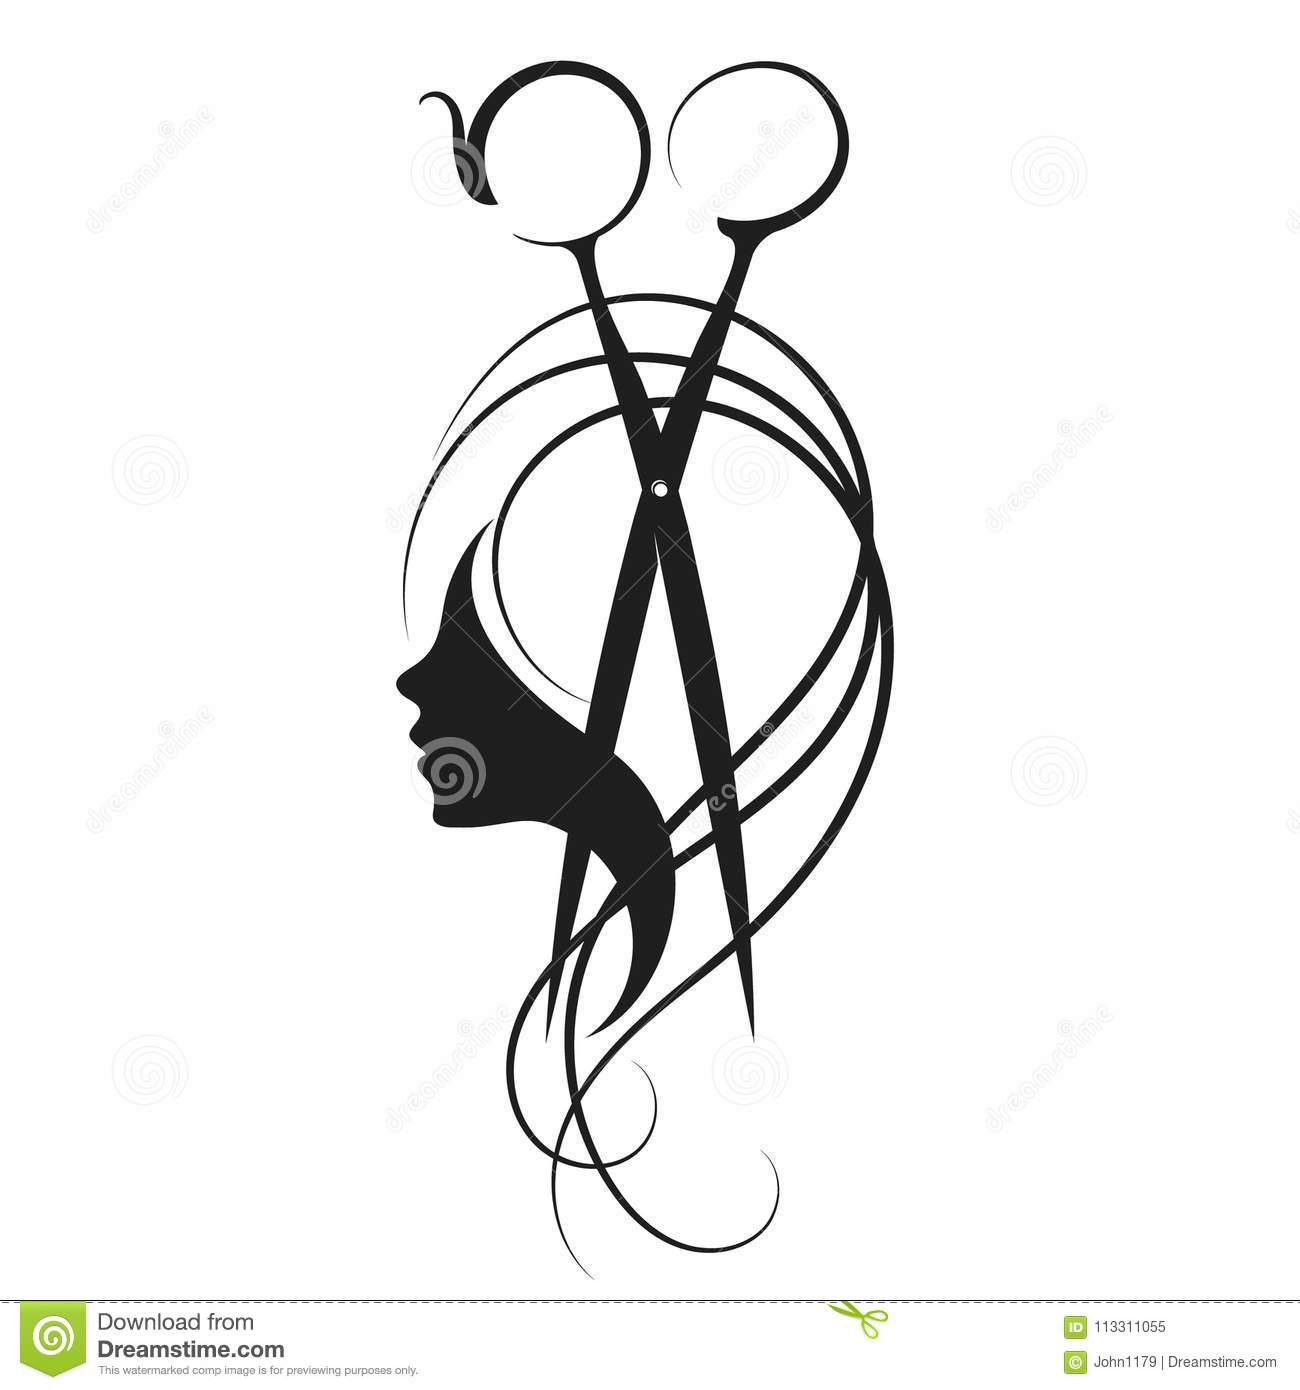 Scissors And Girl Symbol Stock Vector Illustration Of Isolated